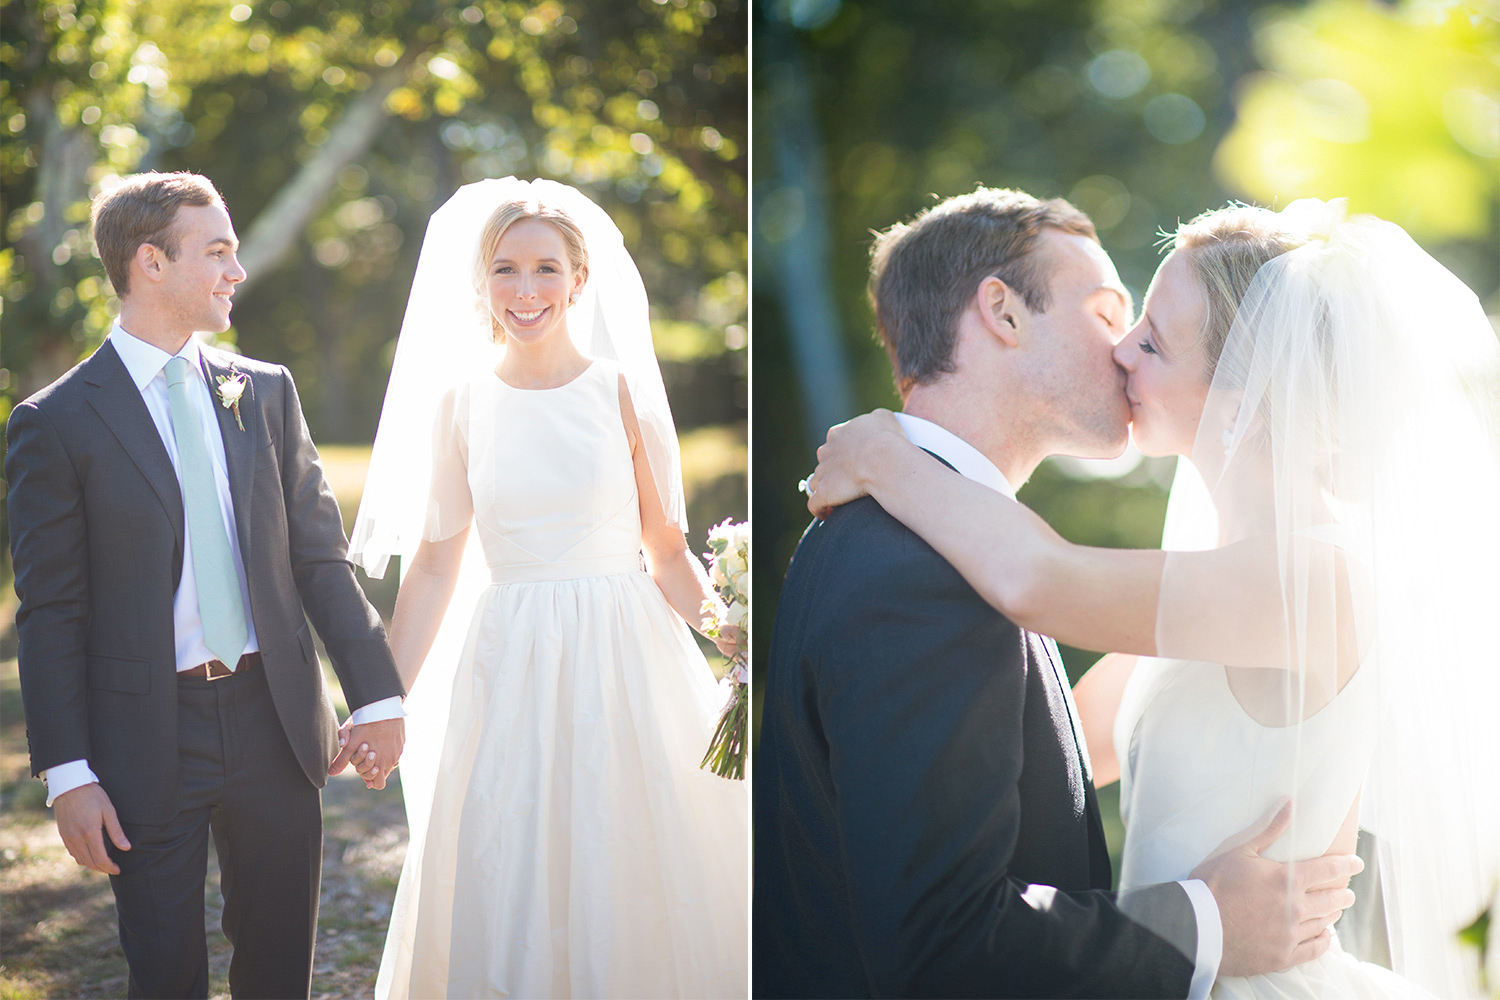 marthas-vineyard-wedding-photographer-26